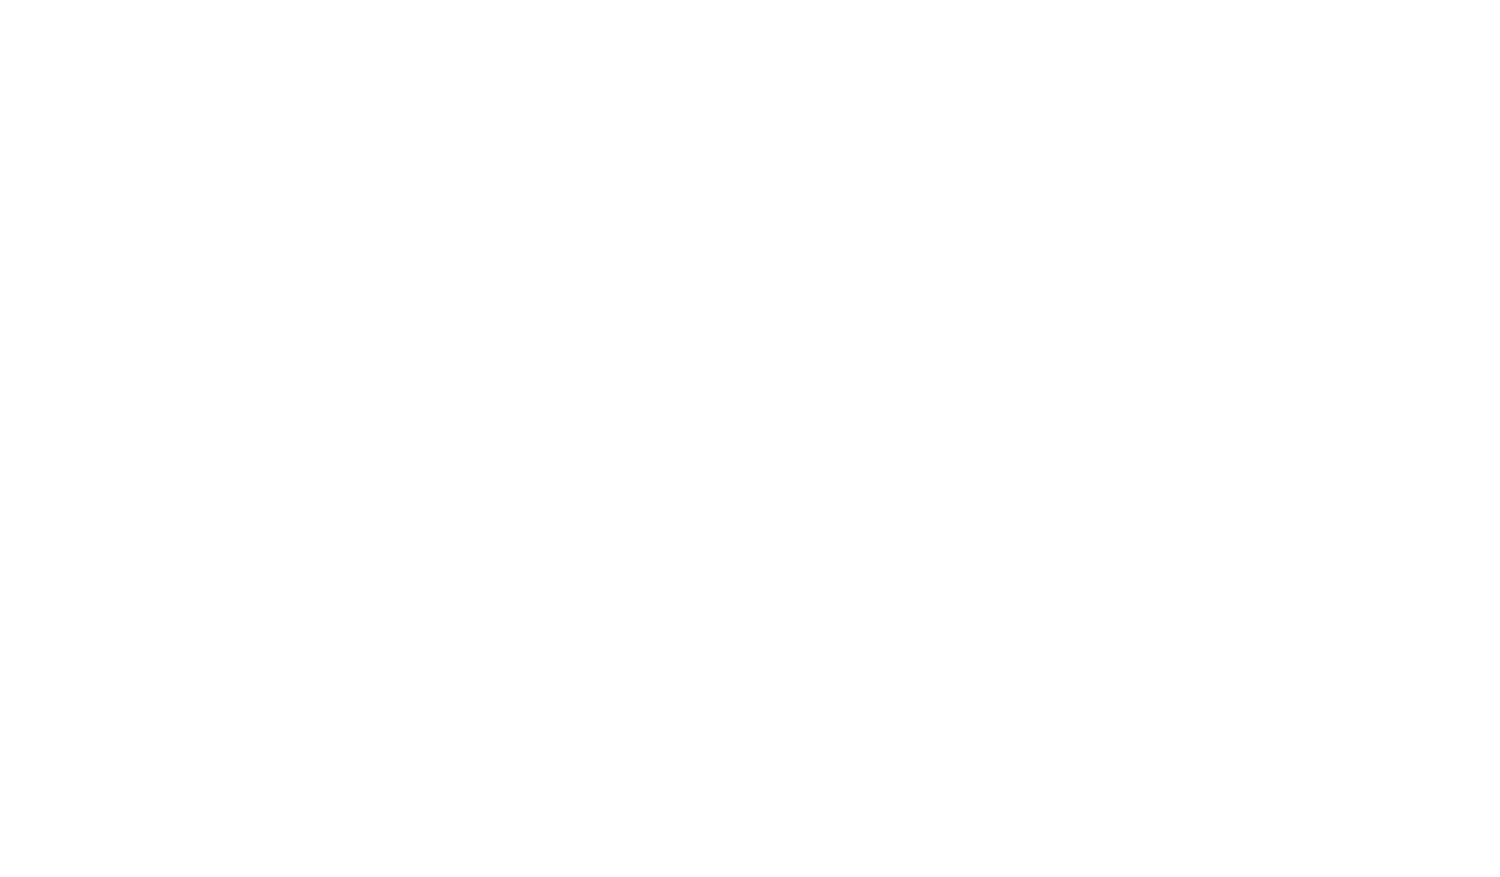 Bazar Tapas Bar and Restaurant